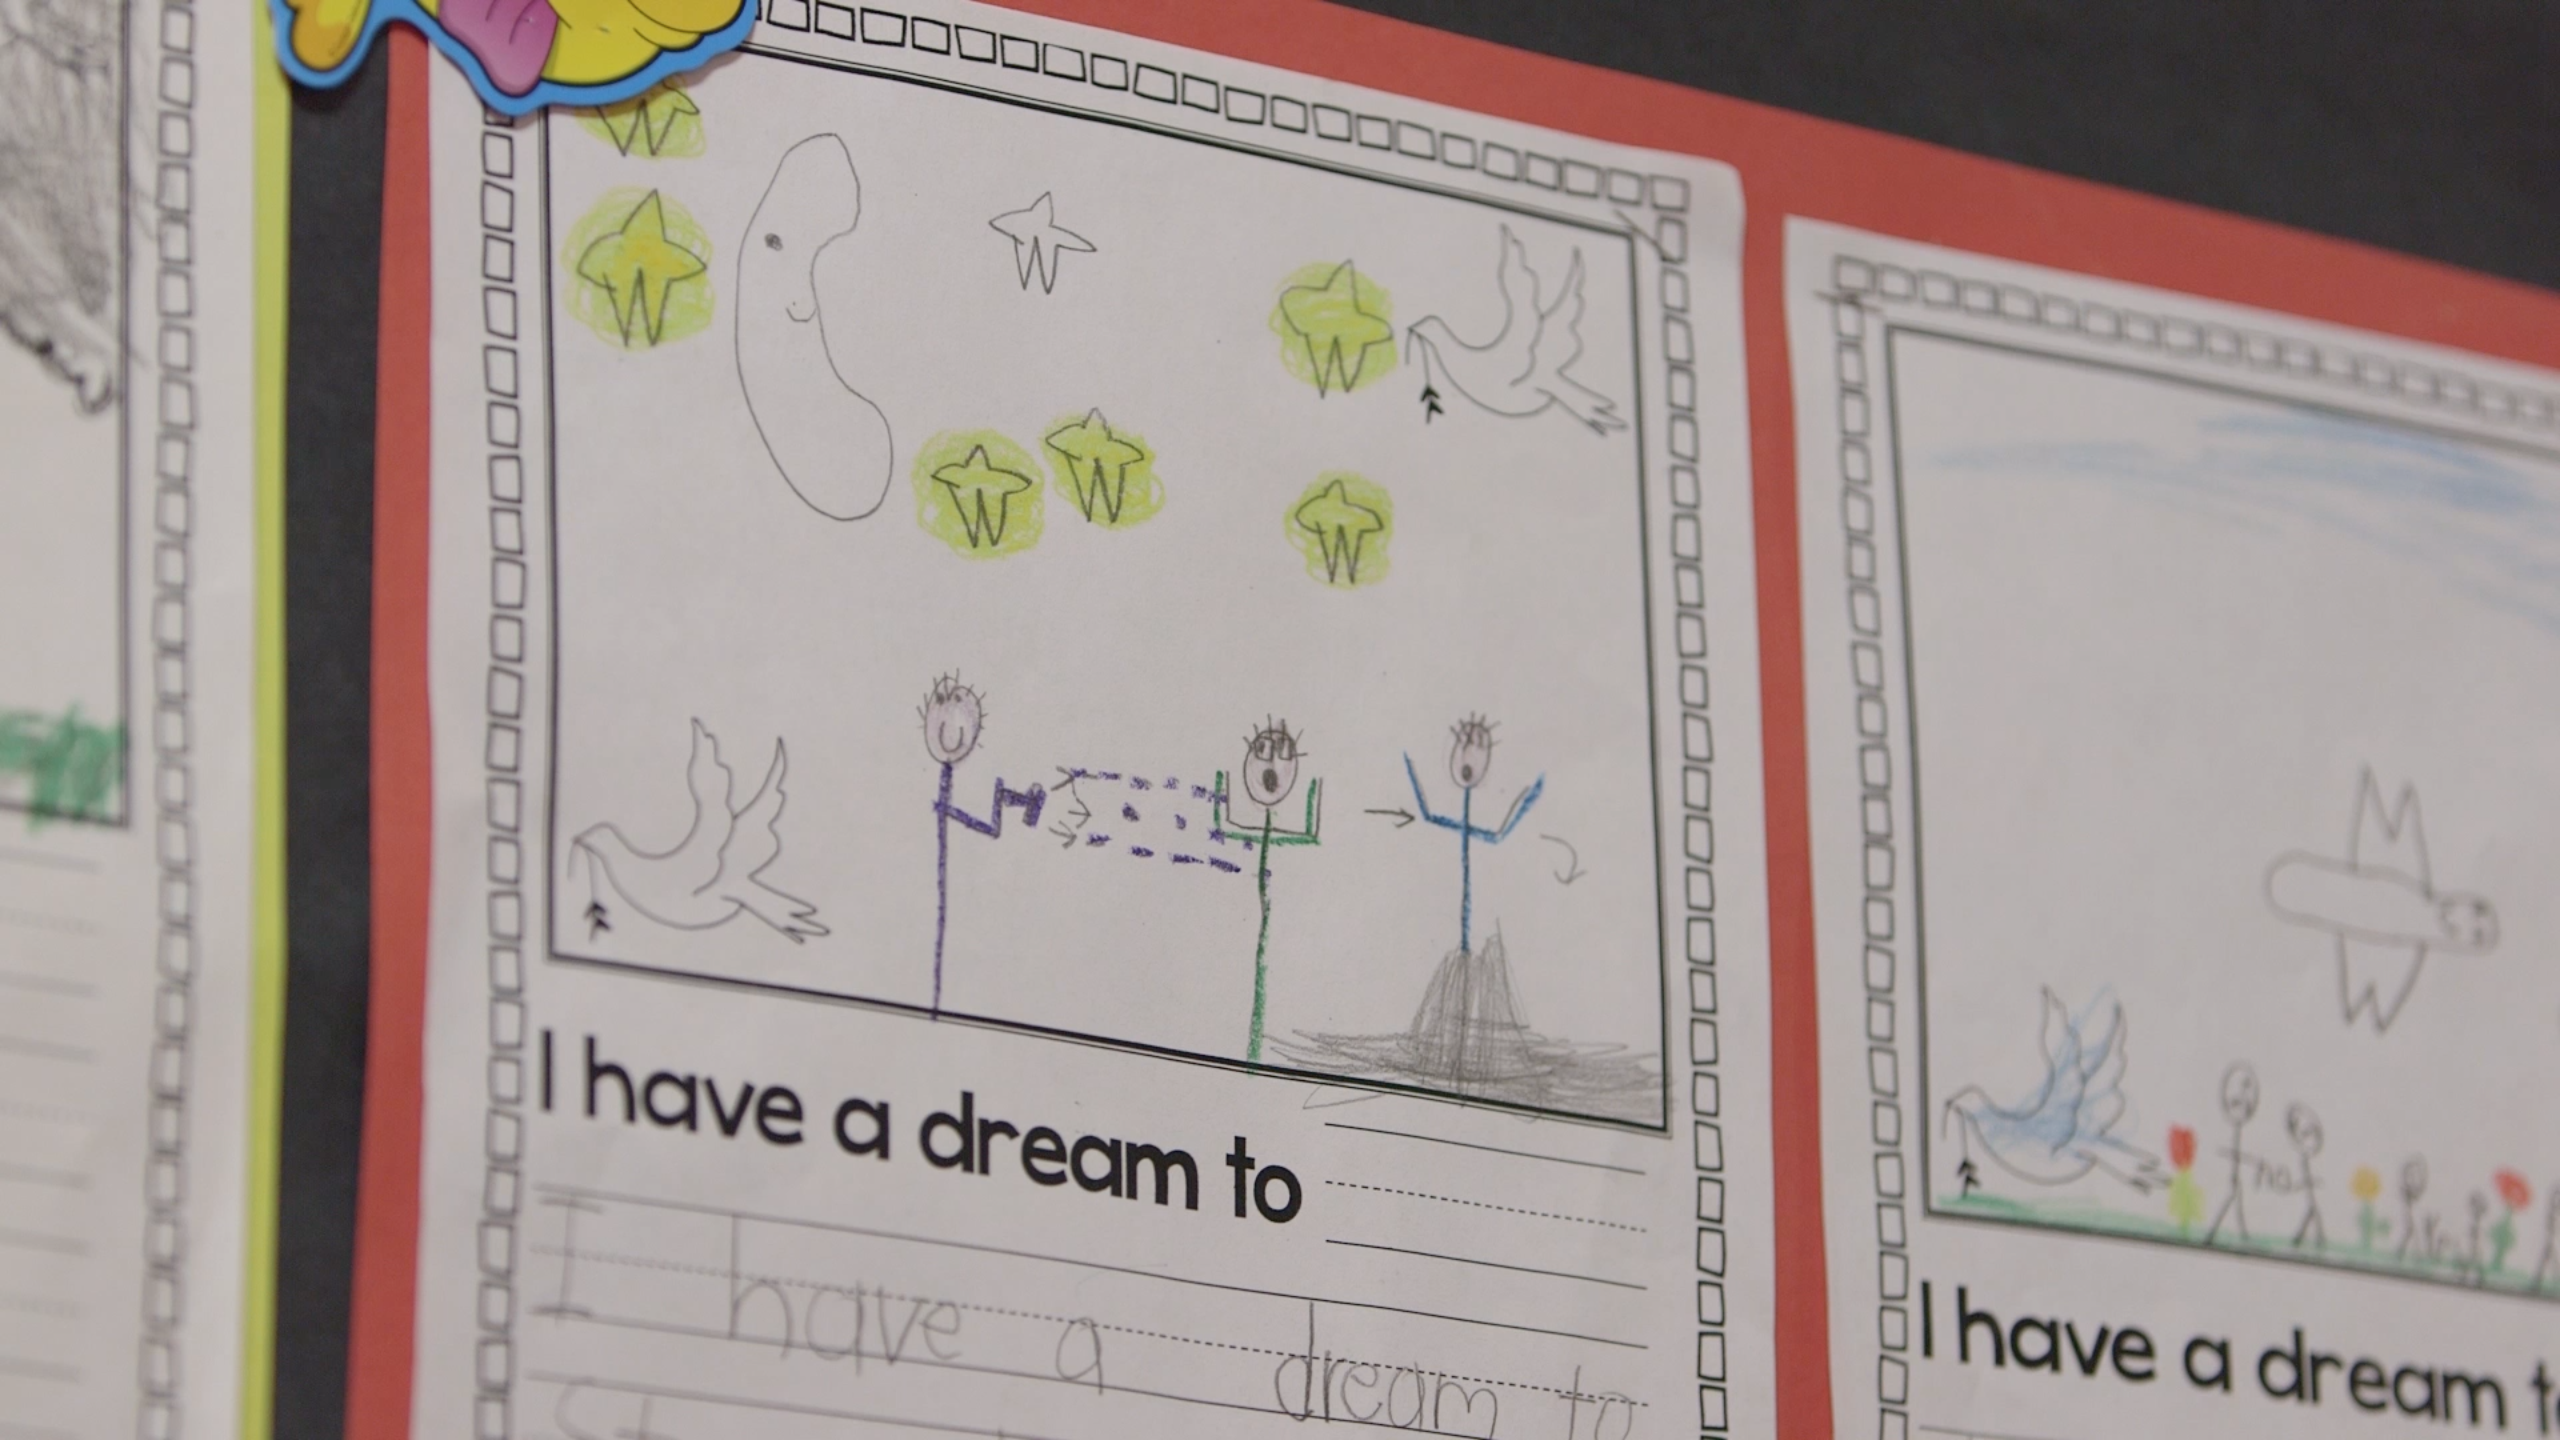 At Community United Elementary School, children draw about their dreams to stop gun violence. Photo: Adam Grossberg/KQED.